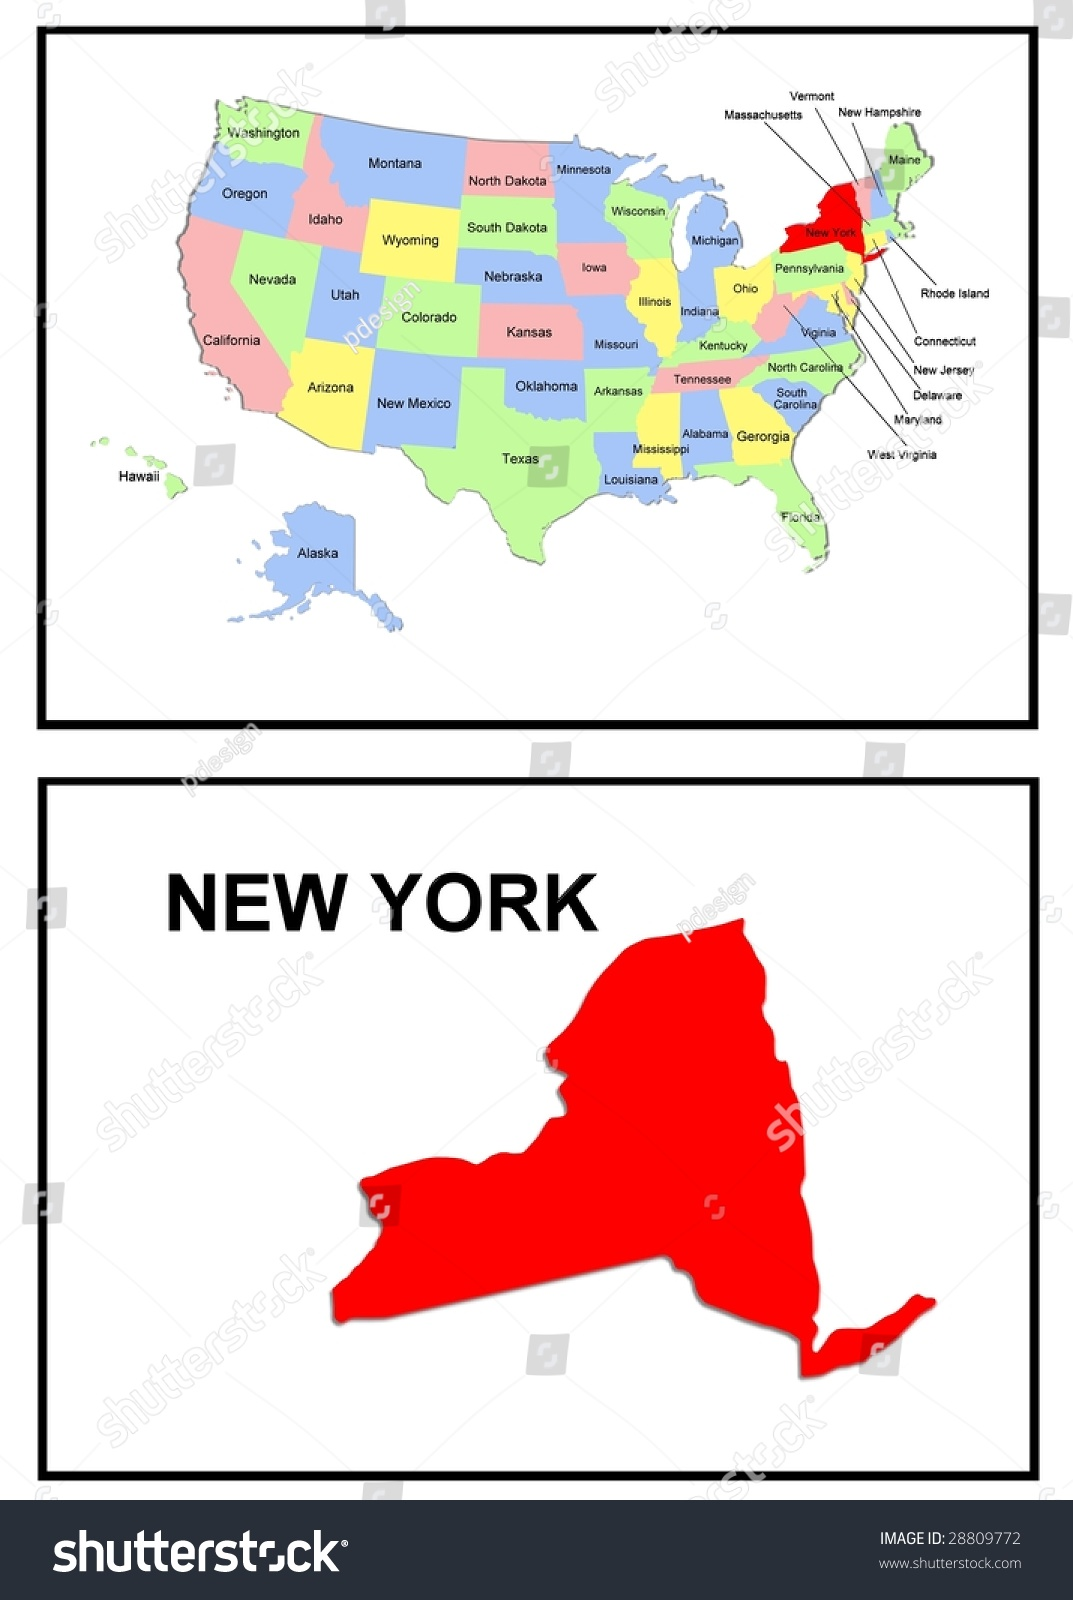 A Full Color Map Of The United States Of America With The New York